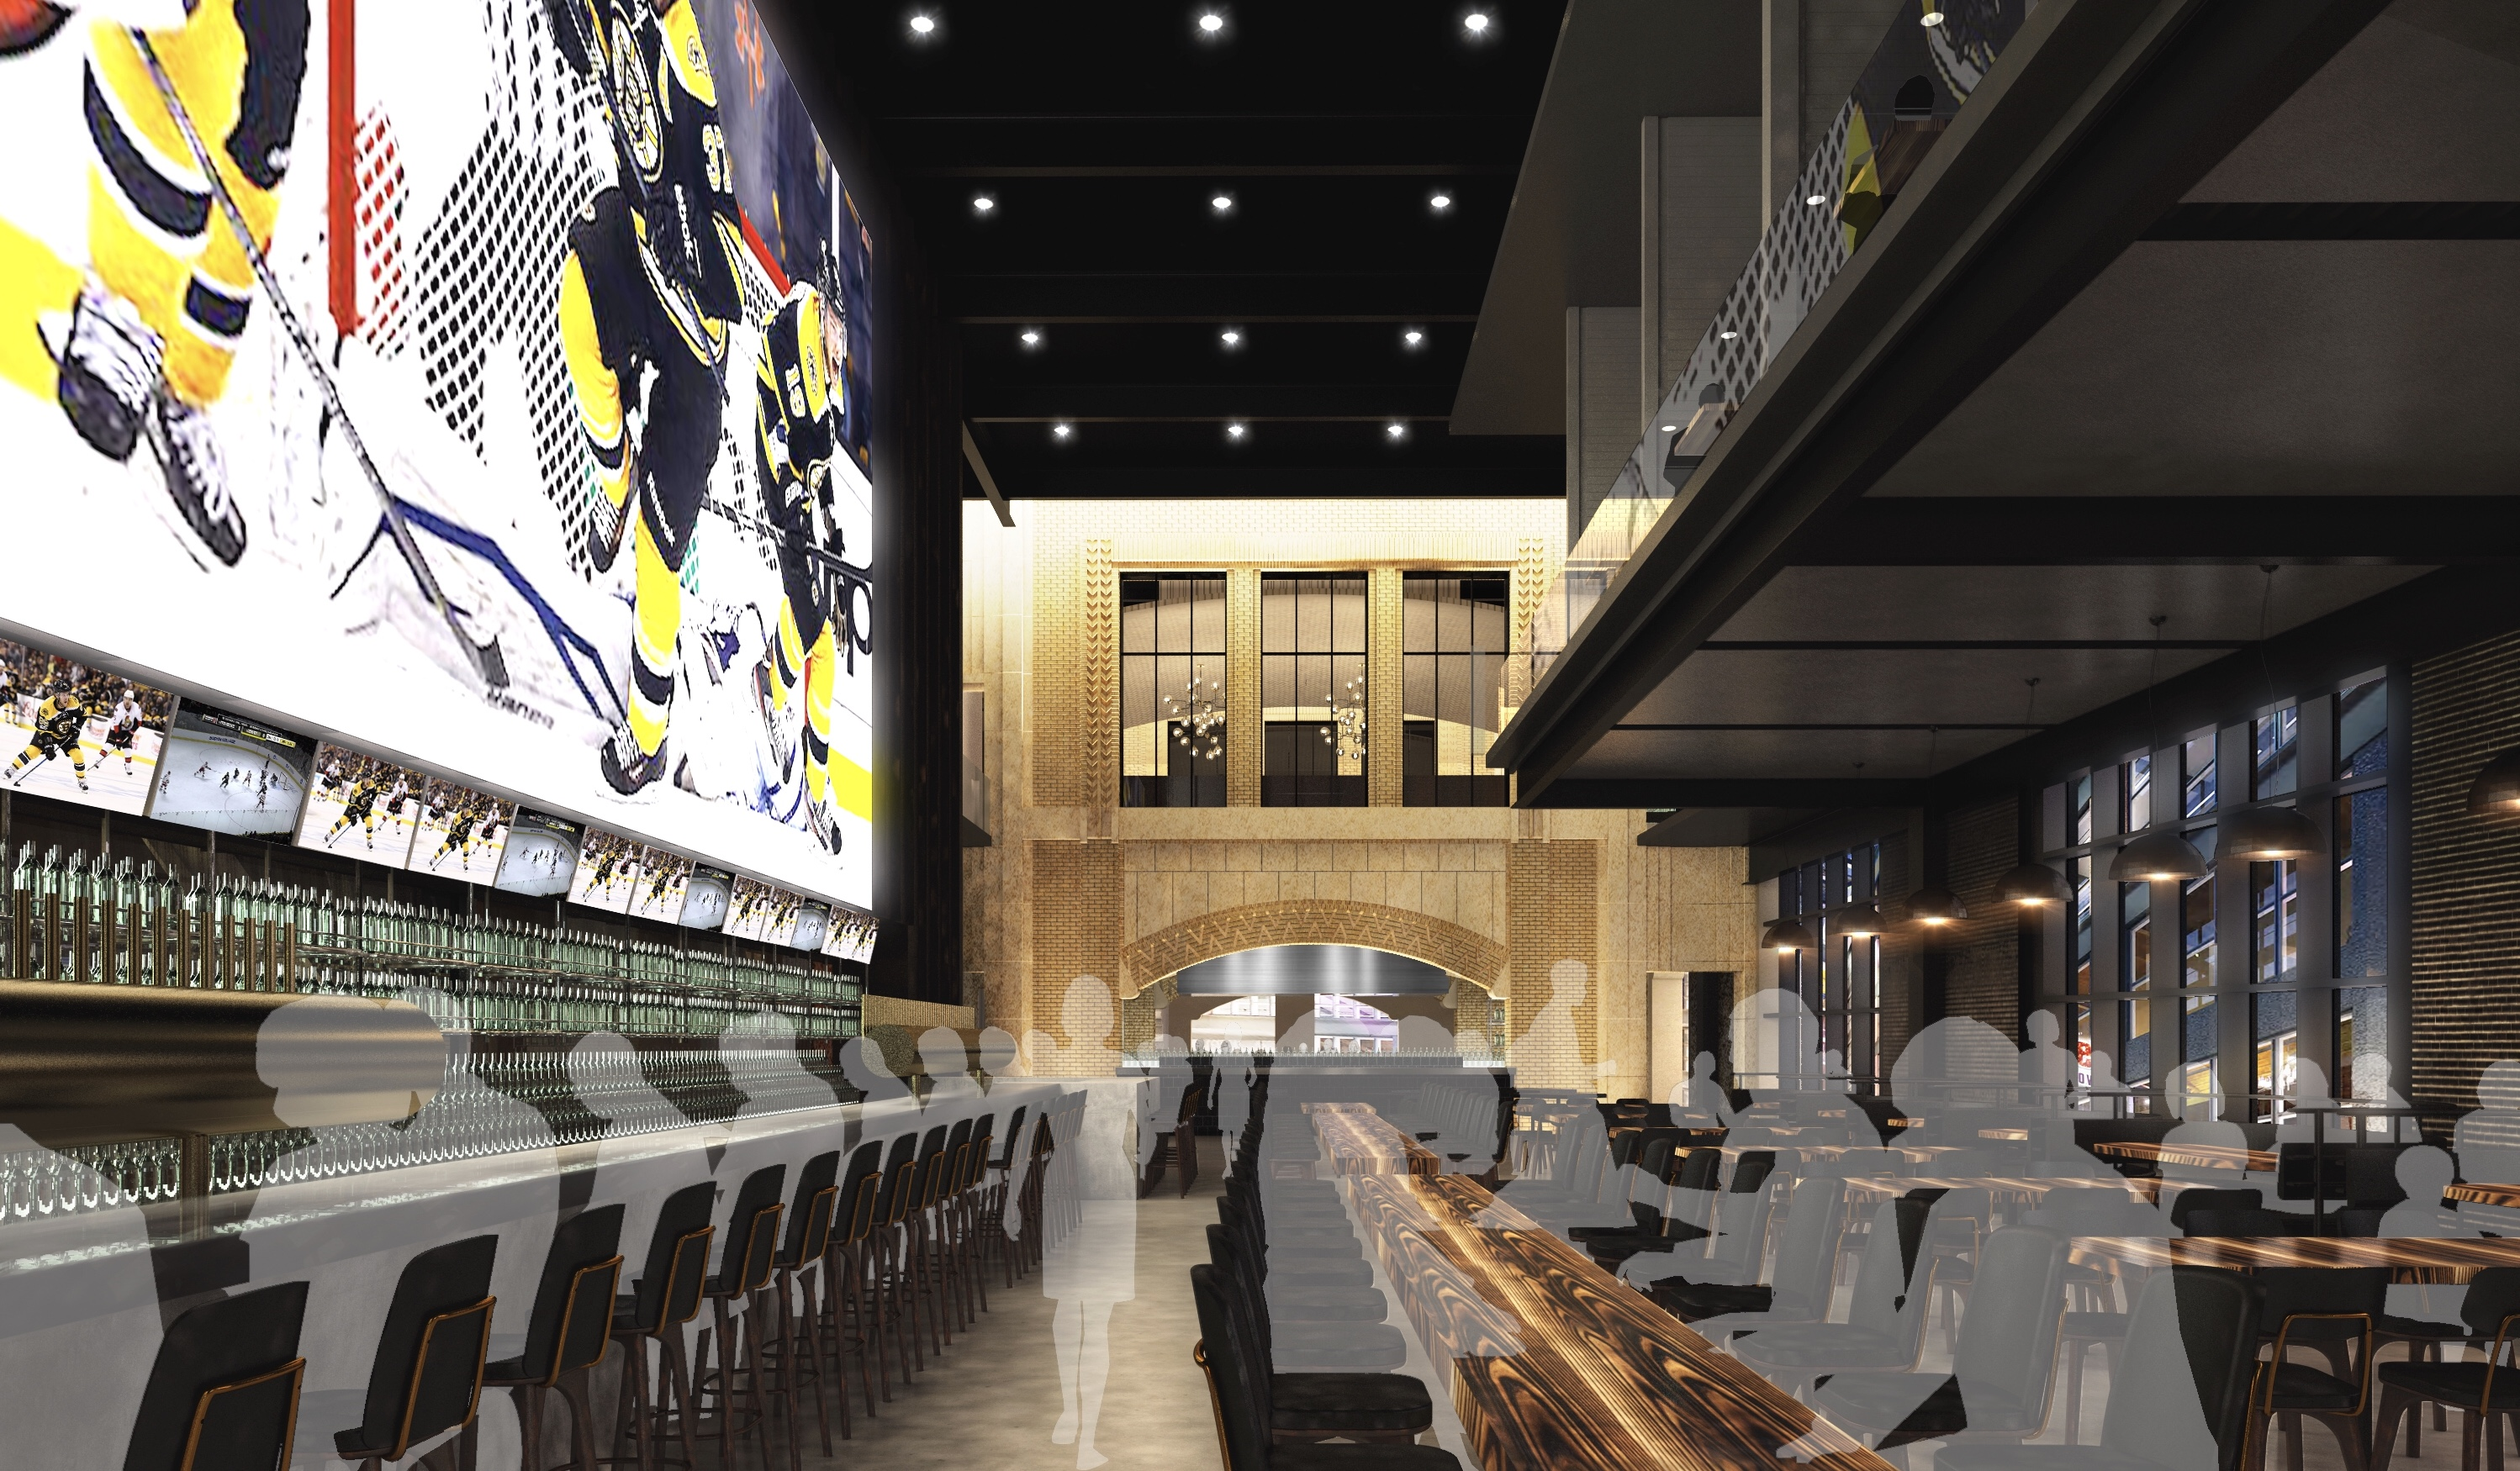 A rendering of the forthcoming Banners Kitchen & Tap, which is a 25,000 square-foot bar and restaurant adjacent to TD Garden in Boston's West End. The space will feature a 39.5-foot television.